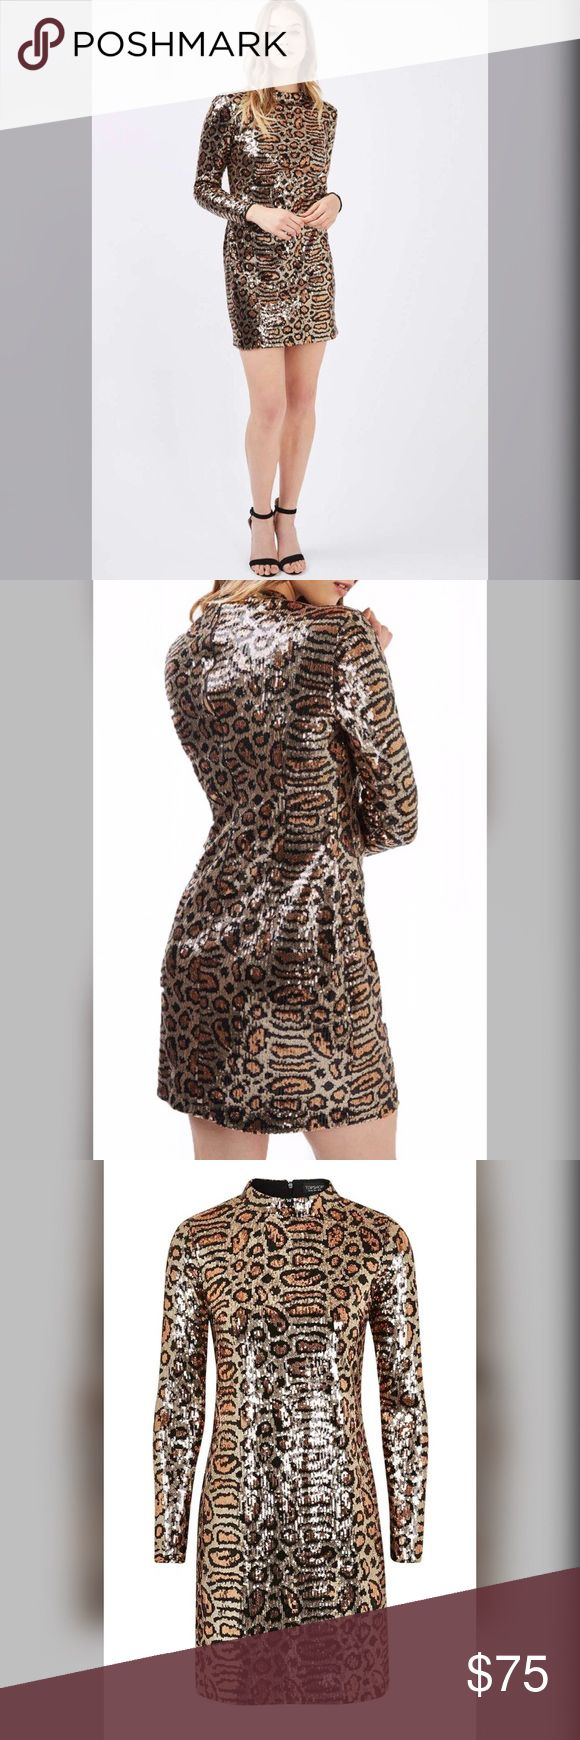 1 HR SALE Topshop Animal Print Sequins Dress SALE❤❤❤Brand new with tag Topshop Animal Print Sequins Body Con Dress US4. Super ready for a great night out or party dress, ready for a great time dress with a stunning shine of sequins. True to size. Pls refer to the picture# 4 for sizing. $110 retail price, make me an offer.. Topshop Dresses Mini